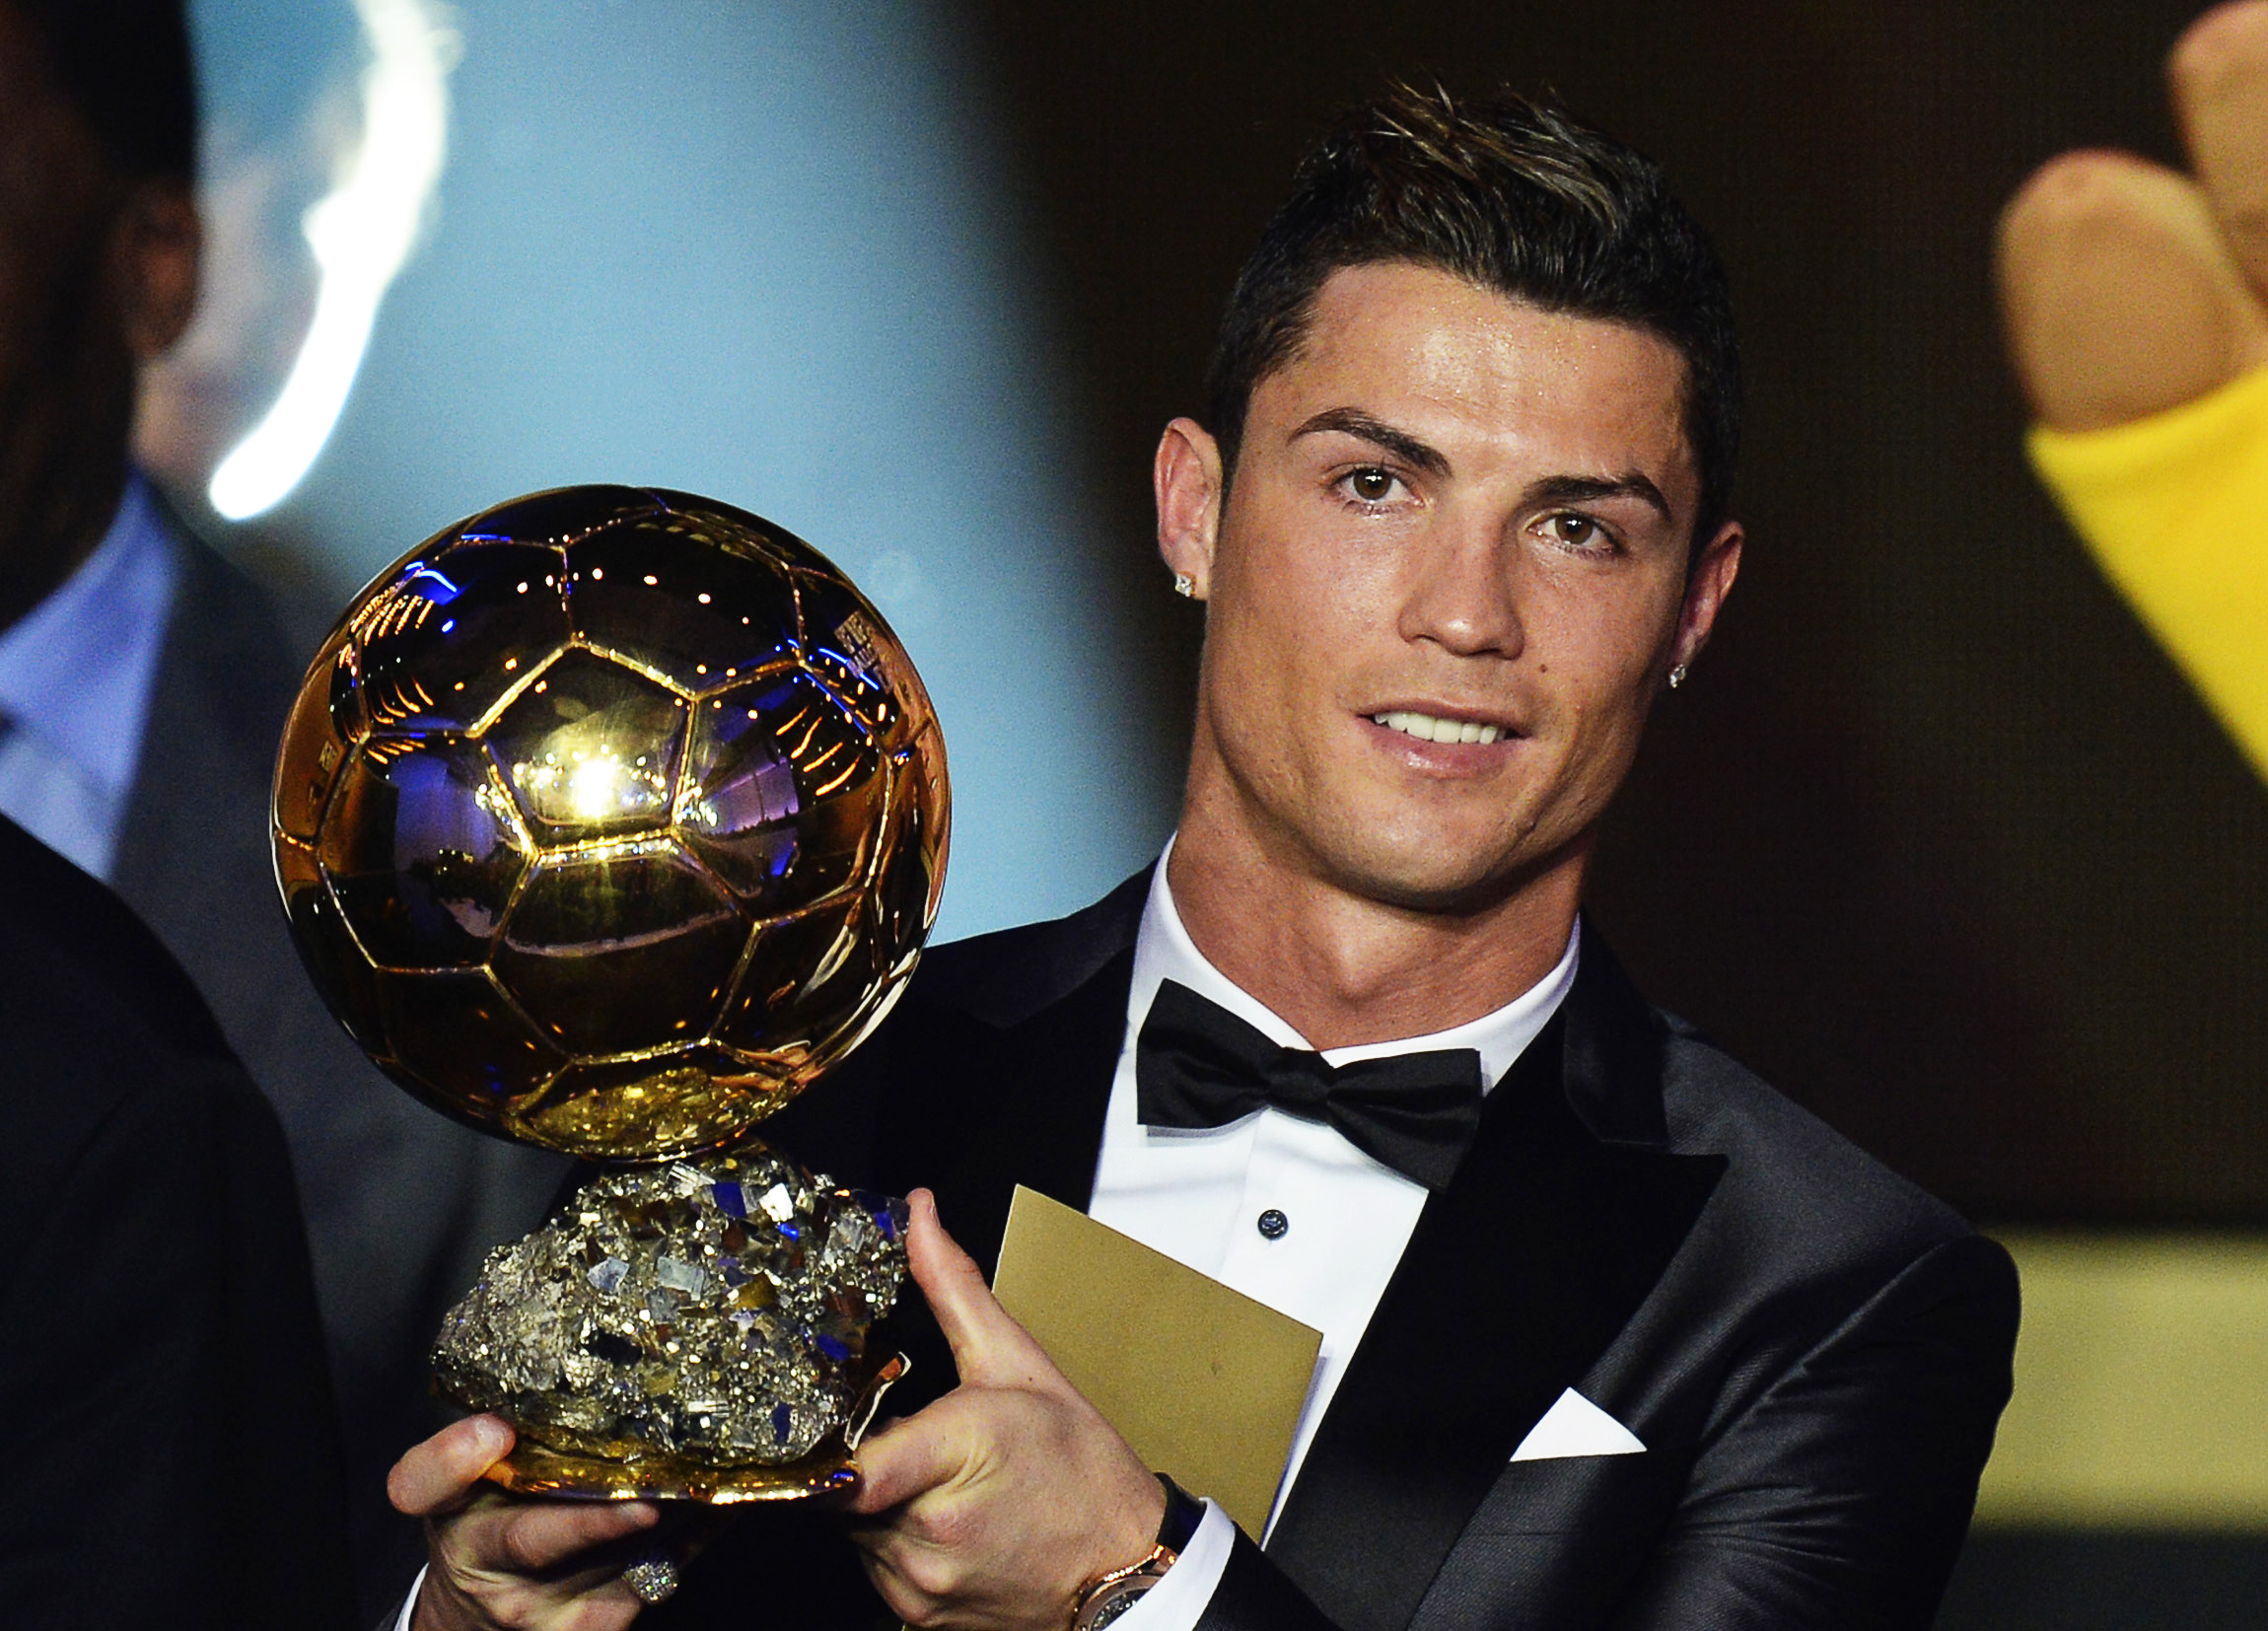 Ronaldo pips Messi to Ballon dOr award - Football - Al Jazeera.